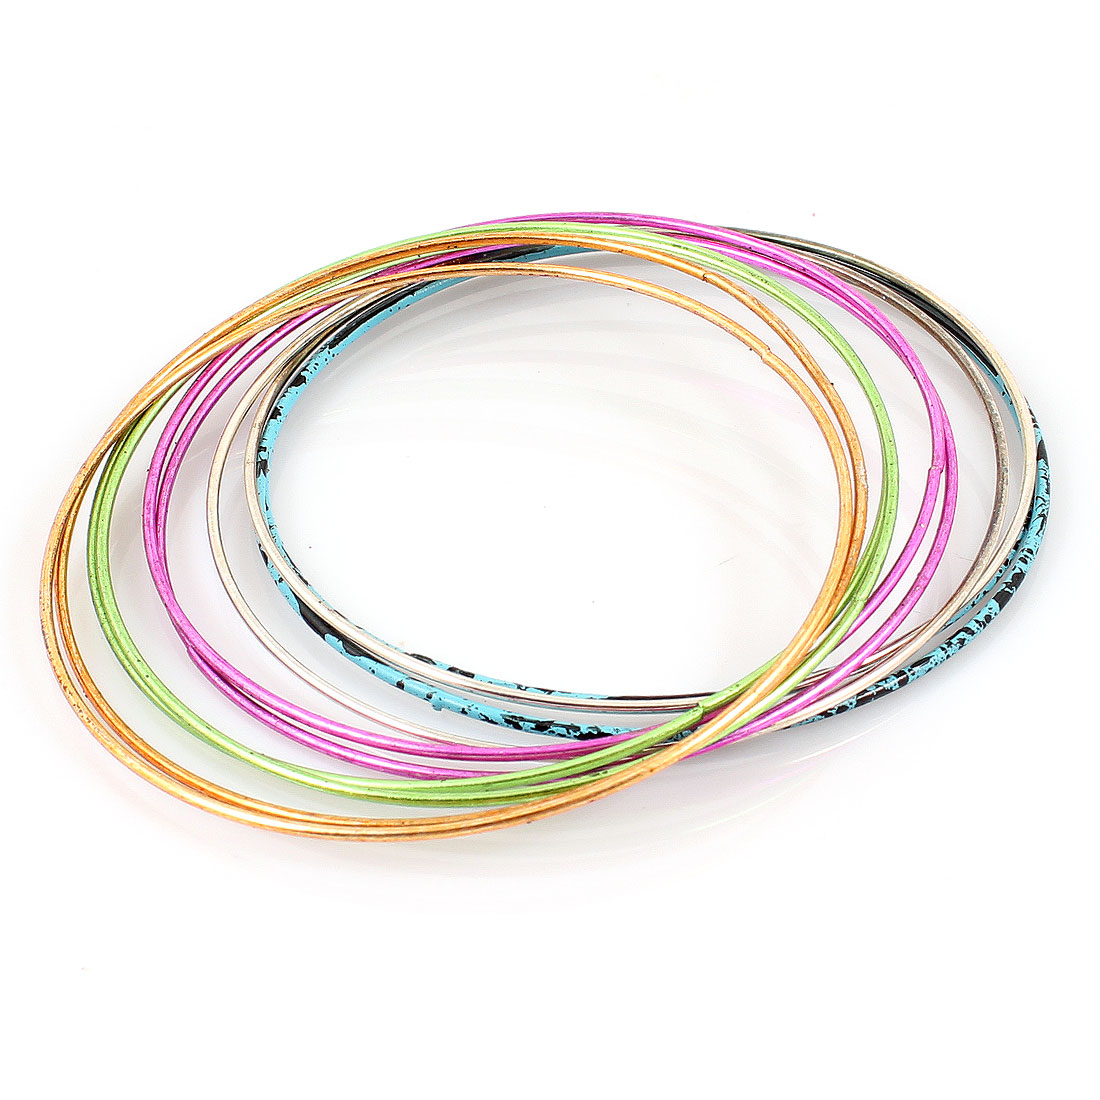 6.5cm Dia Lady Ornament Colored Metal Loop Wrist Bracelet Bangle 10pcs